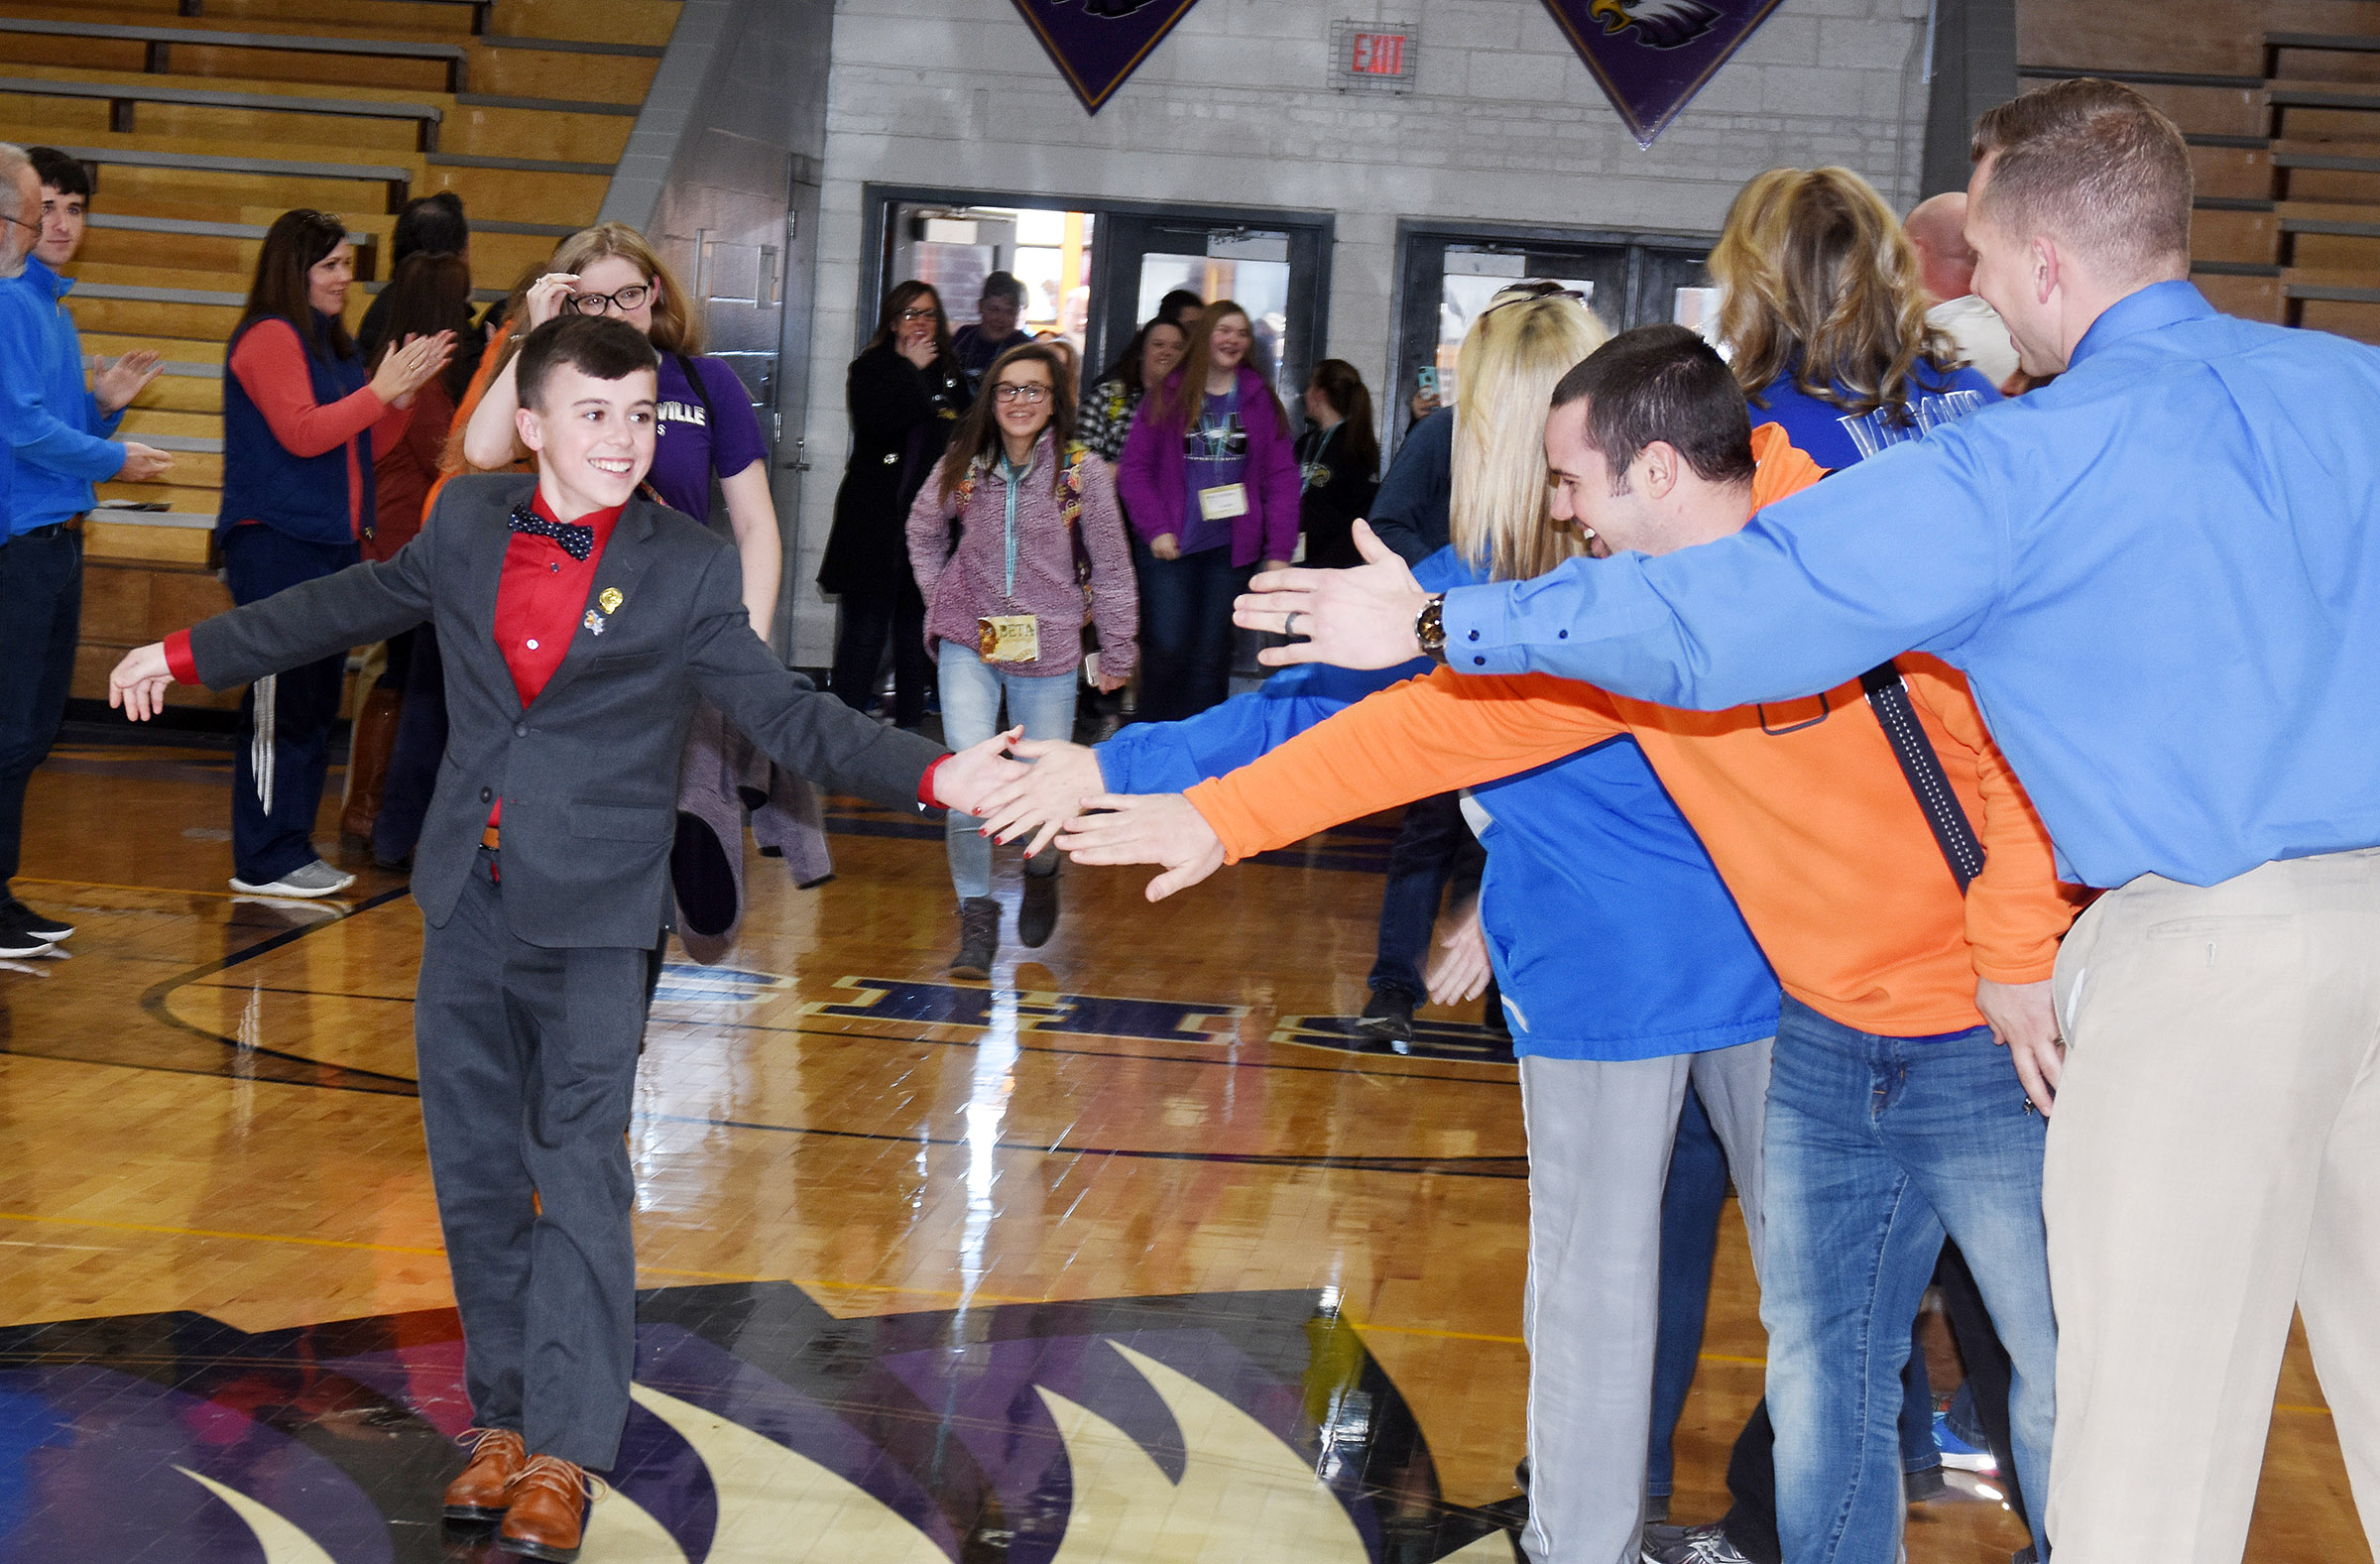 Seventh-grader Chase Hord, center, was elected secretary at the Kentucky Junior Beta convention and becomes the first CMS student to win a state office. He and his fellow Beta members were welcomed home by their teachers and classmates.